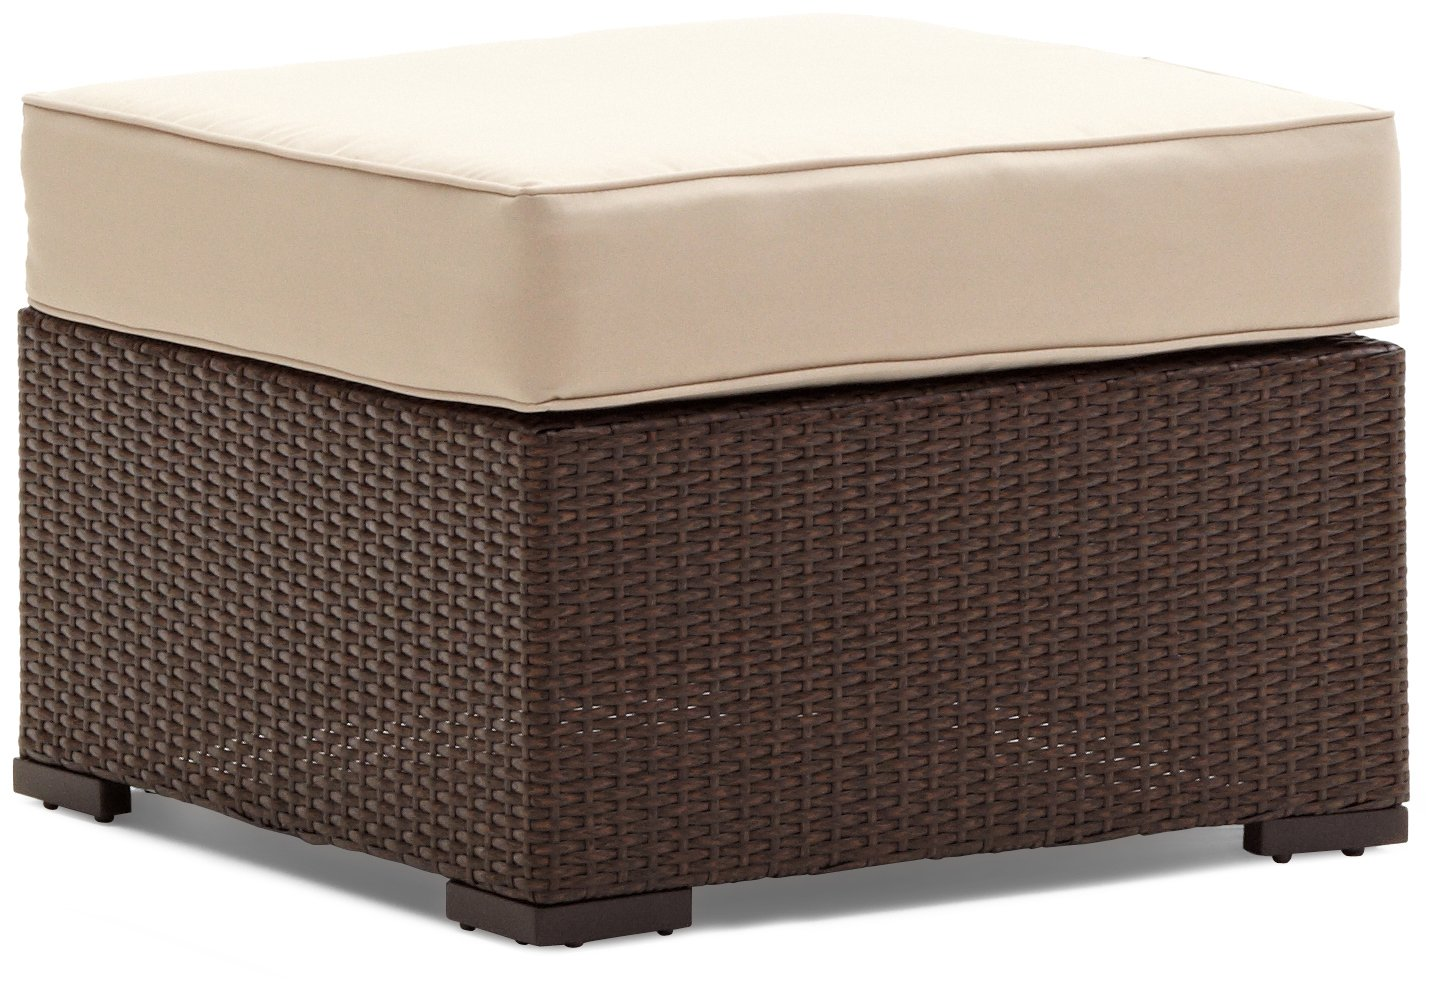 all weather ottoman woven resin wicker w beige cushion aluminum frame brown ebay